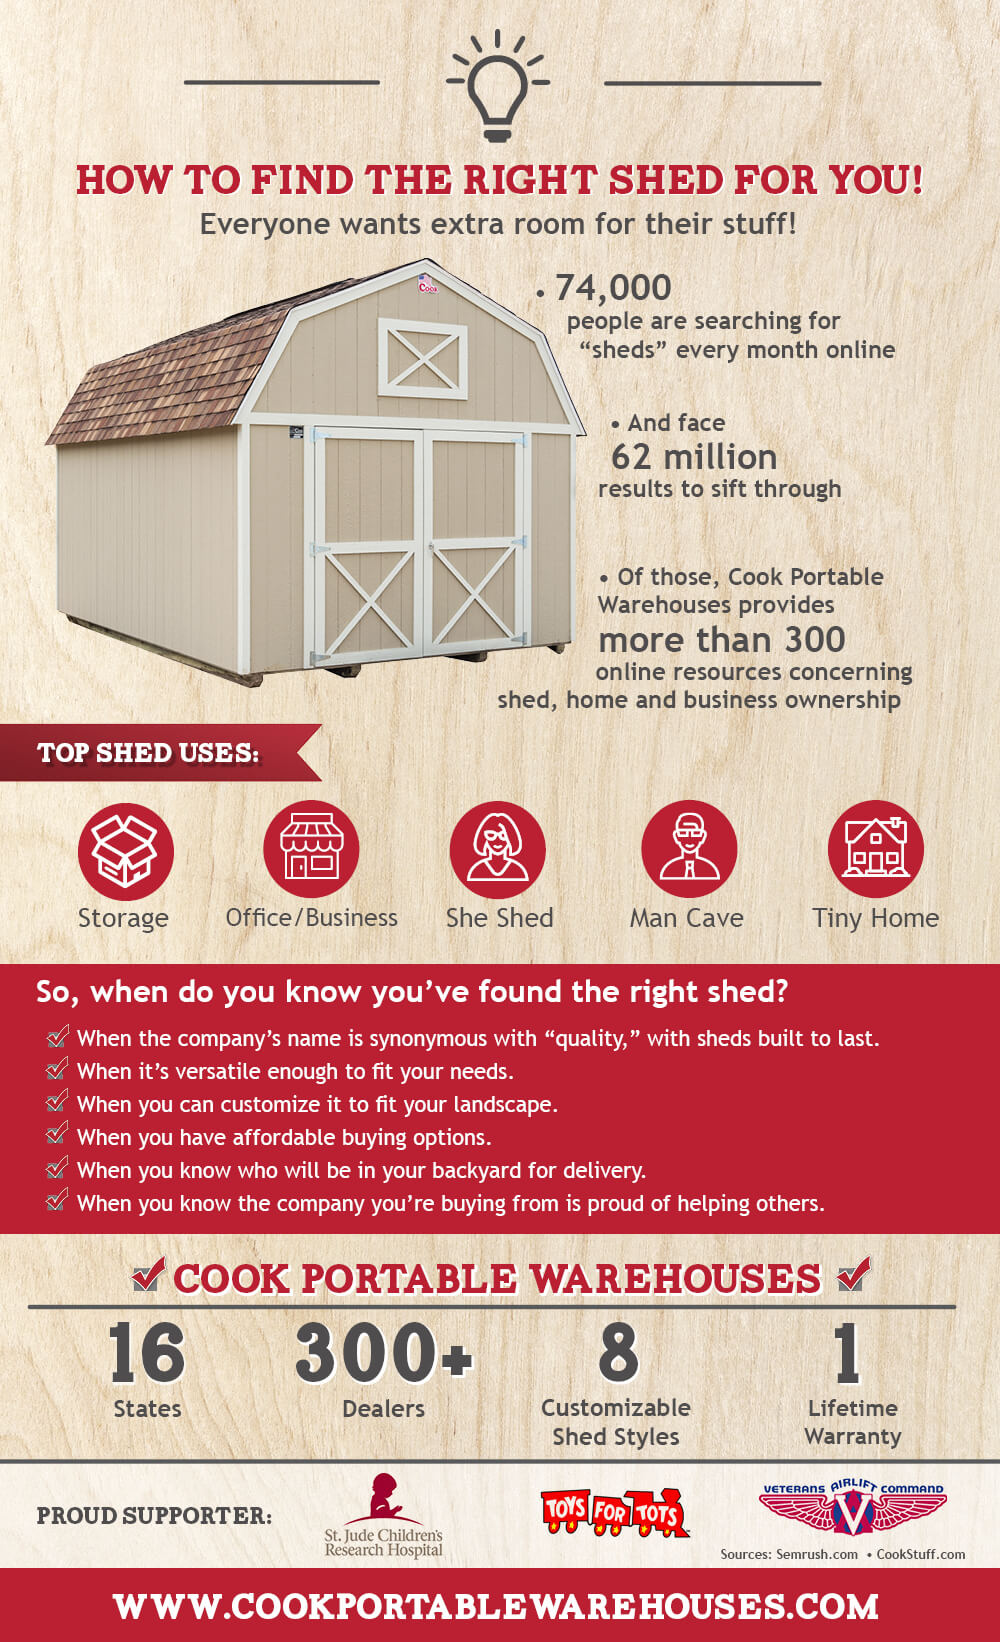 How to Find the Right Shed for You Infographic + Cook Portable Warehouses